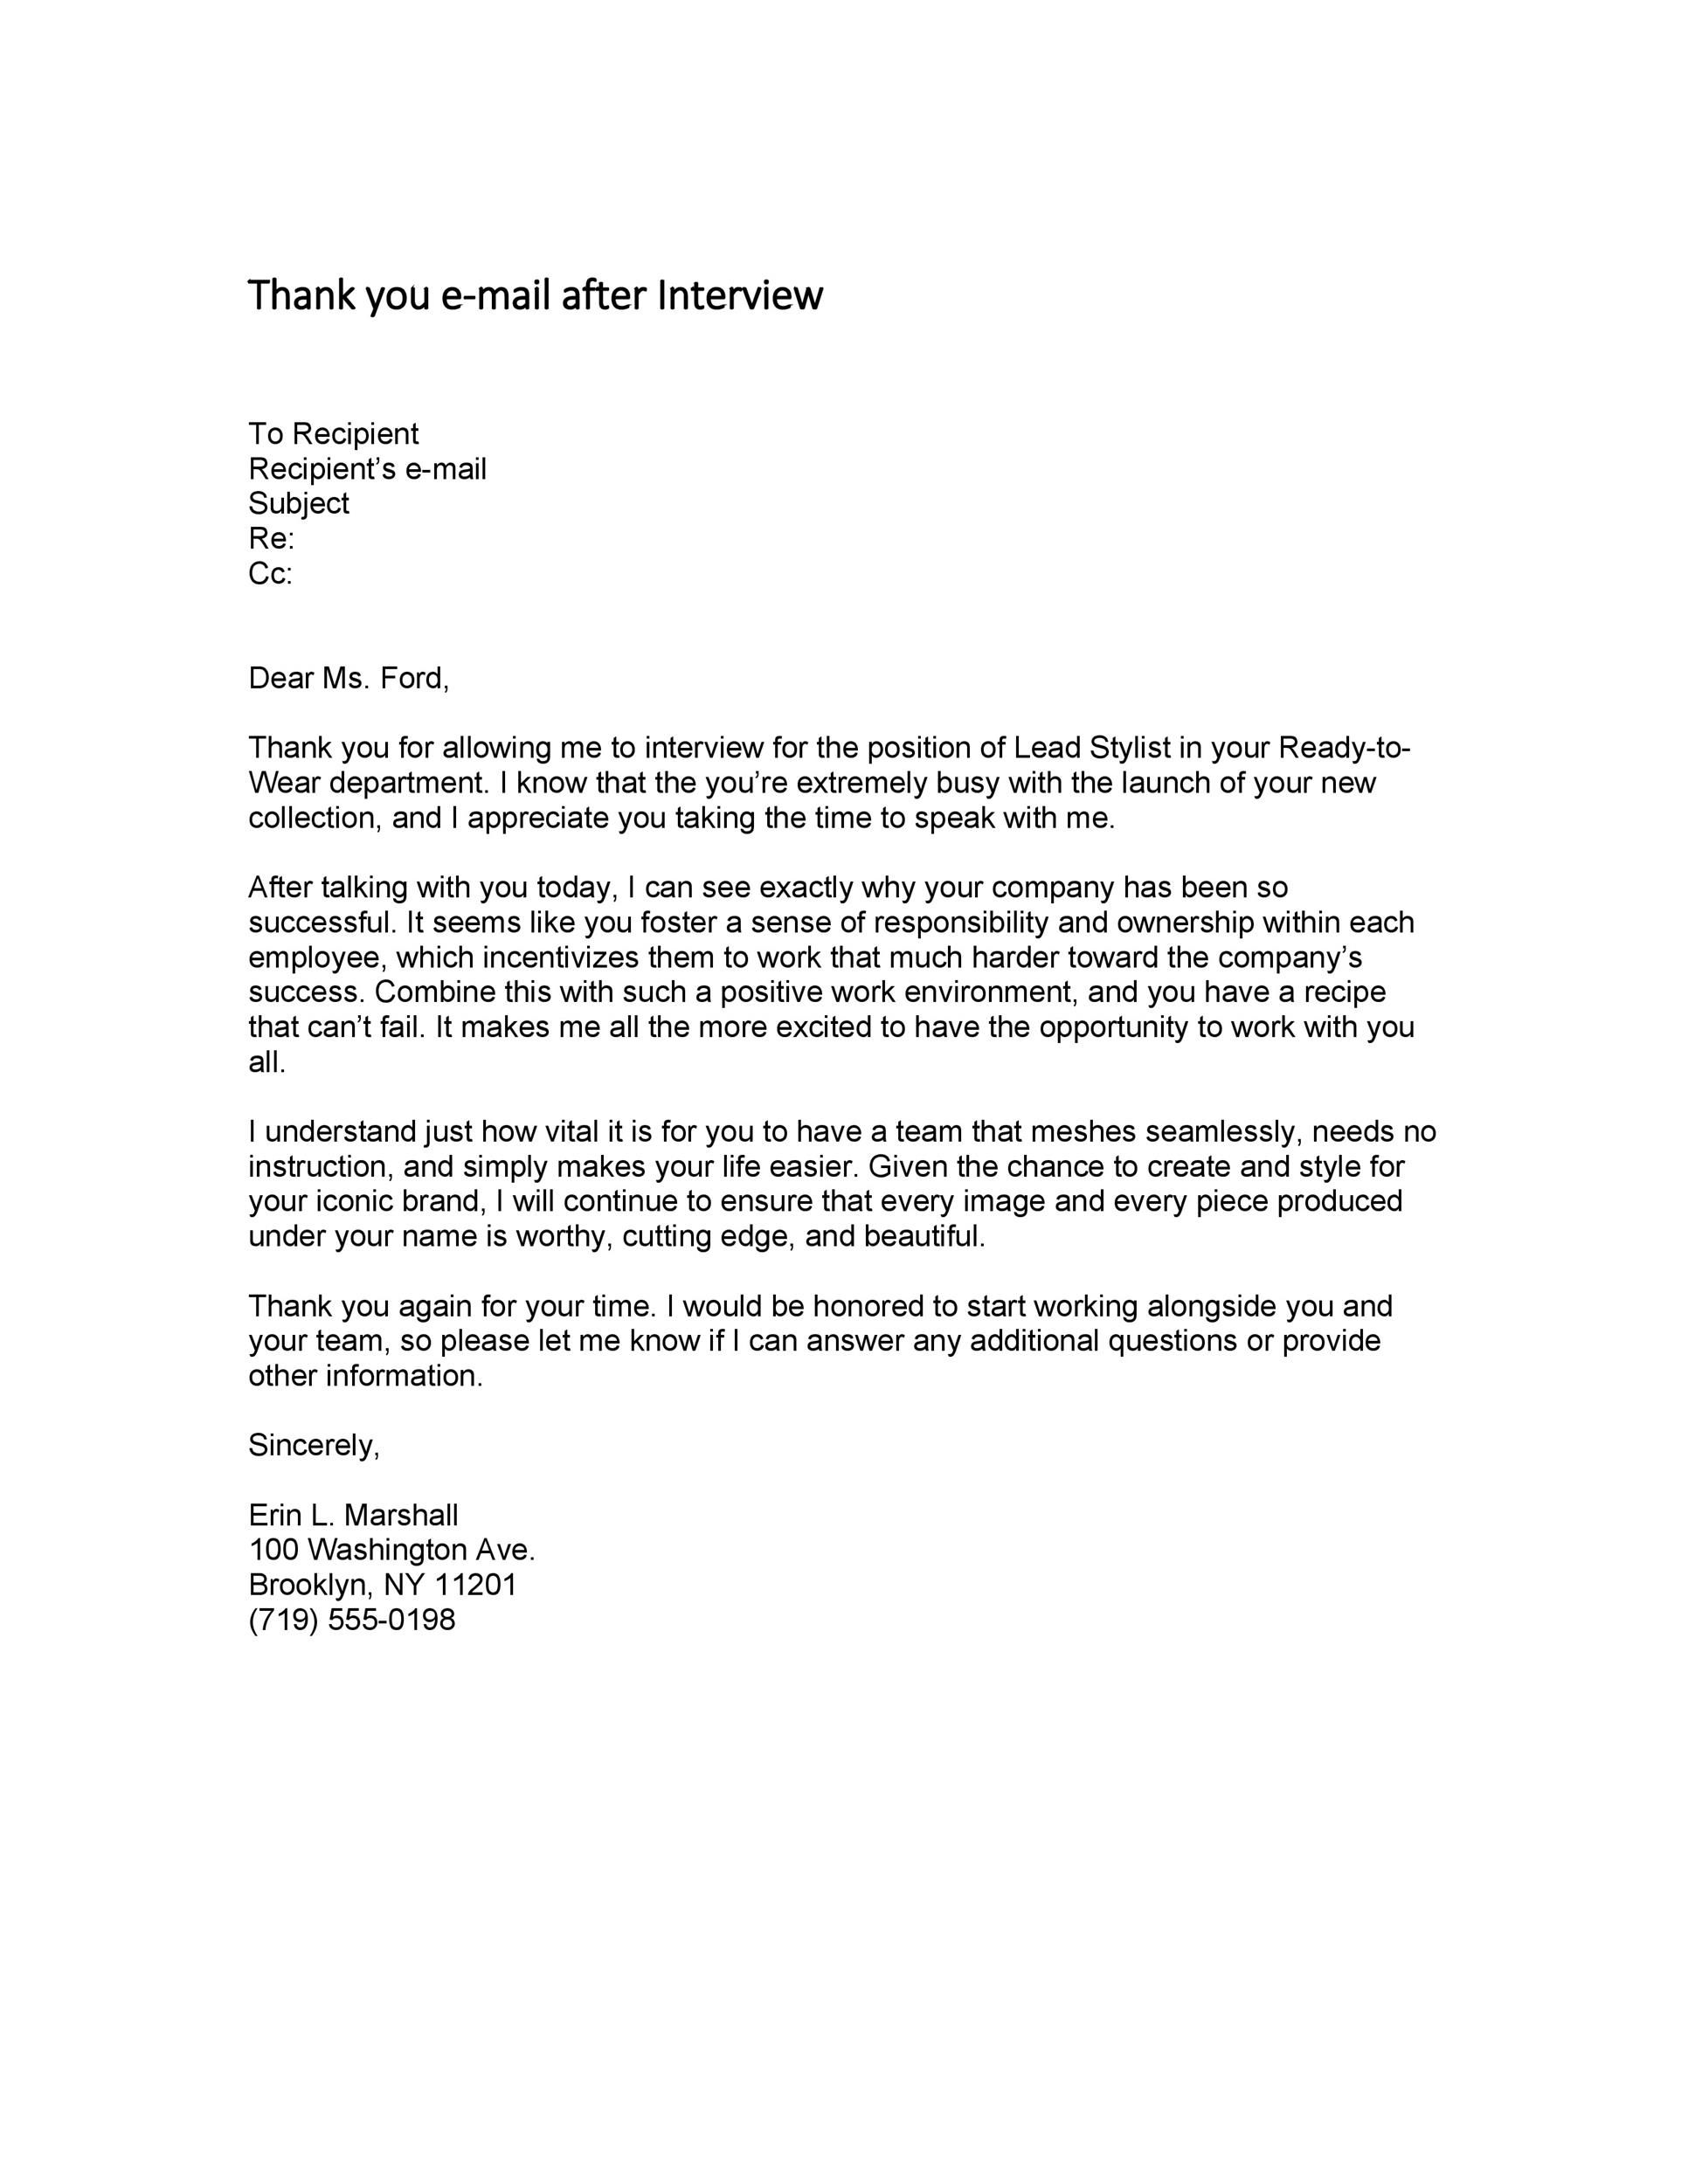 Thank You Letter After Meeting from www.addictionary.org